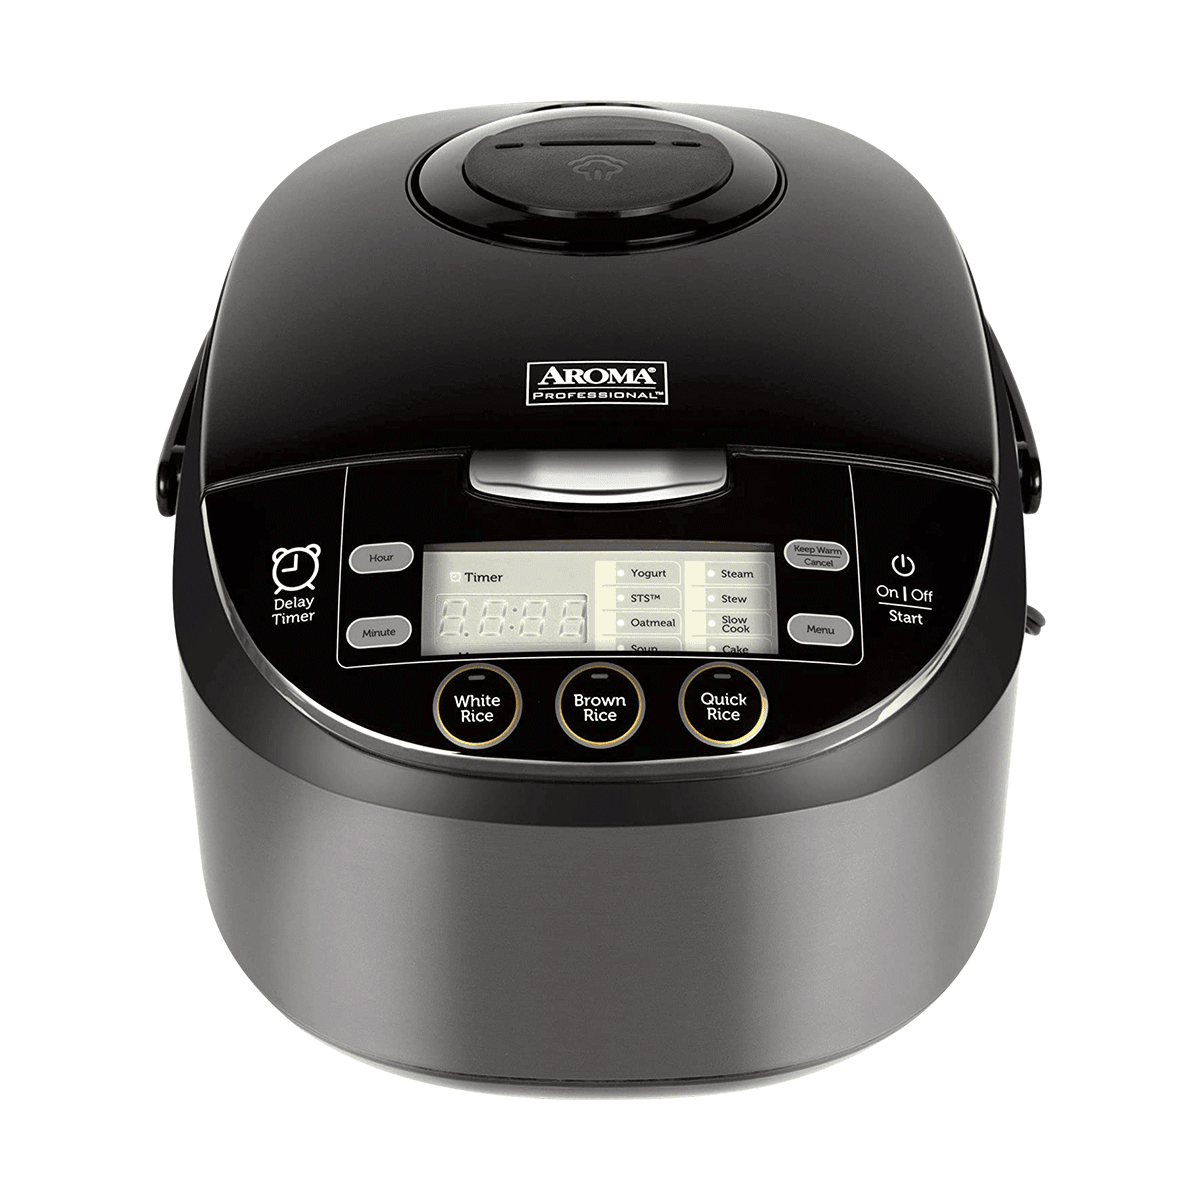 Yamibuy.com:Customer reviews:AROMA Multi-Function Digital Display Rice Cooker 12 Cup Cooked Rice ARC-6106AB  (5 Year Mfg Warranty)